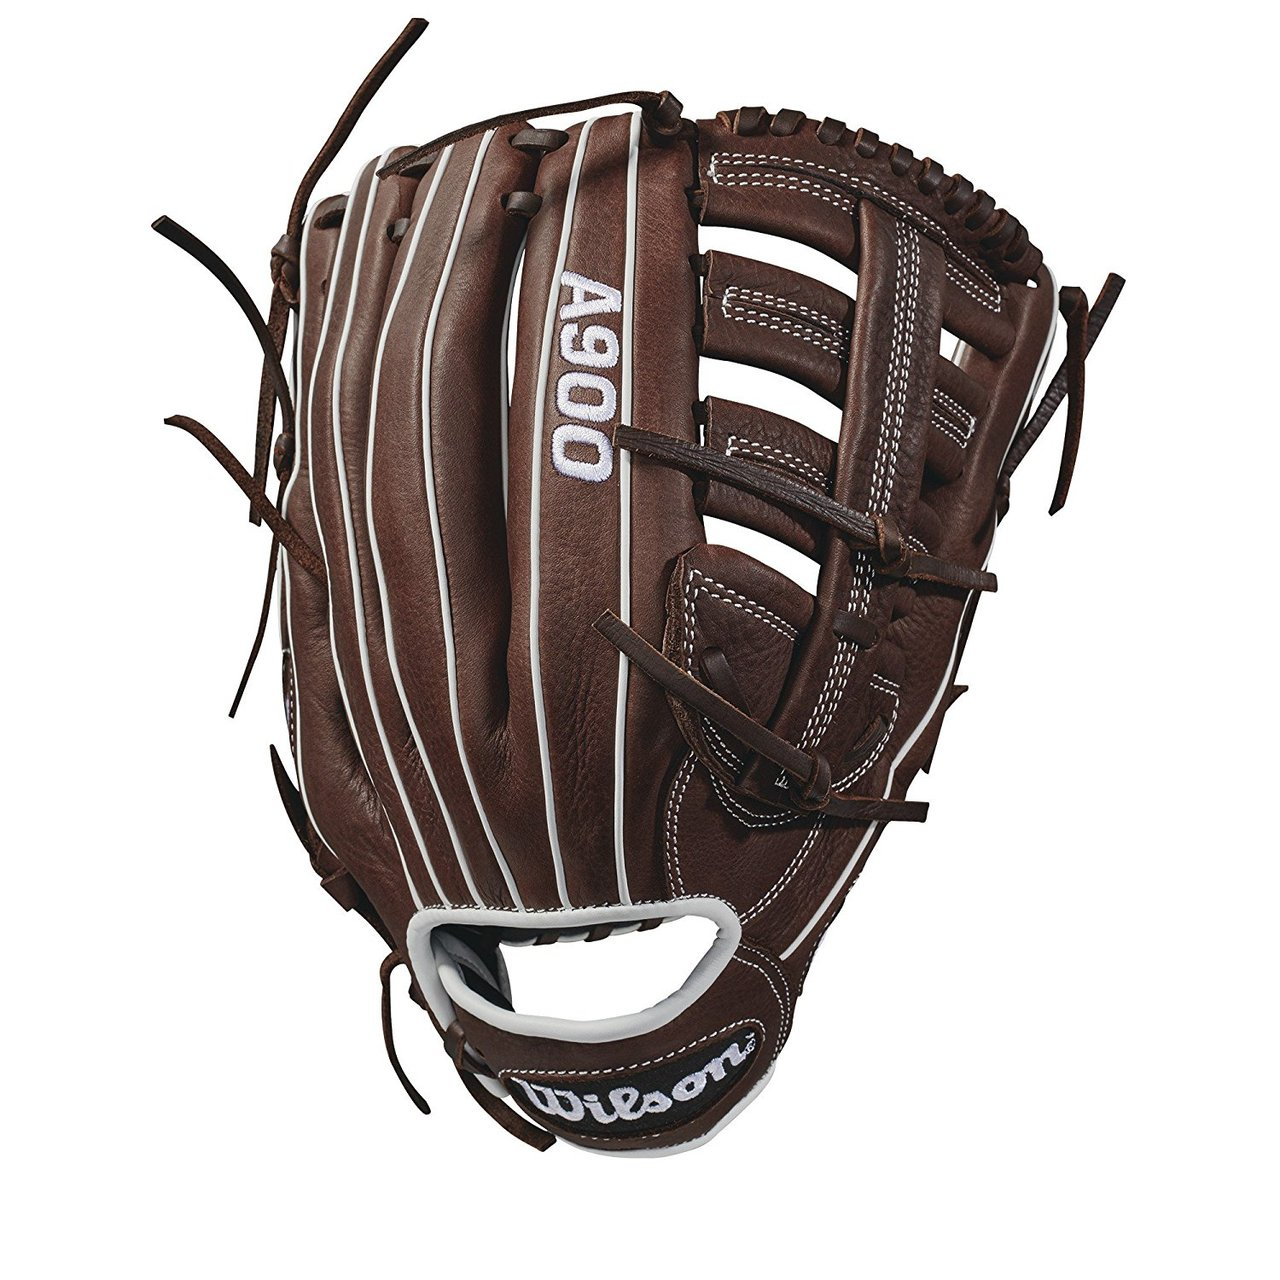 wilson-2018-a900-baseball-glove-12-5-right-hand-throw WTA09RB18125-RightHandThrow Wilson 887768593919 Wilson youth baseball gloves are intended for a younger more advanced